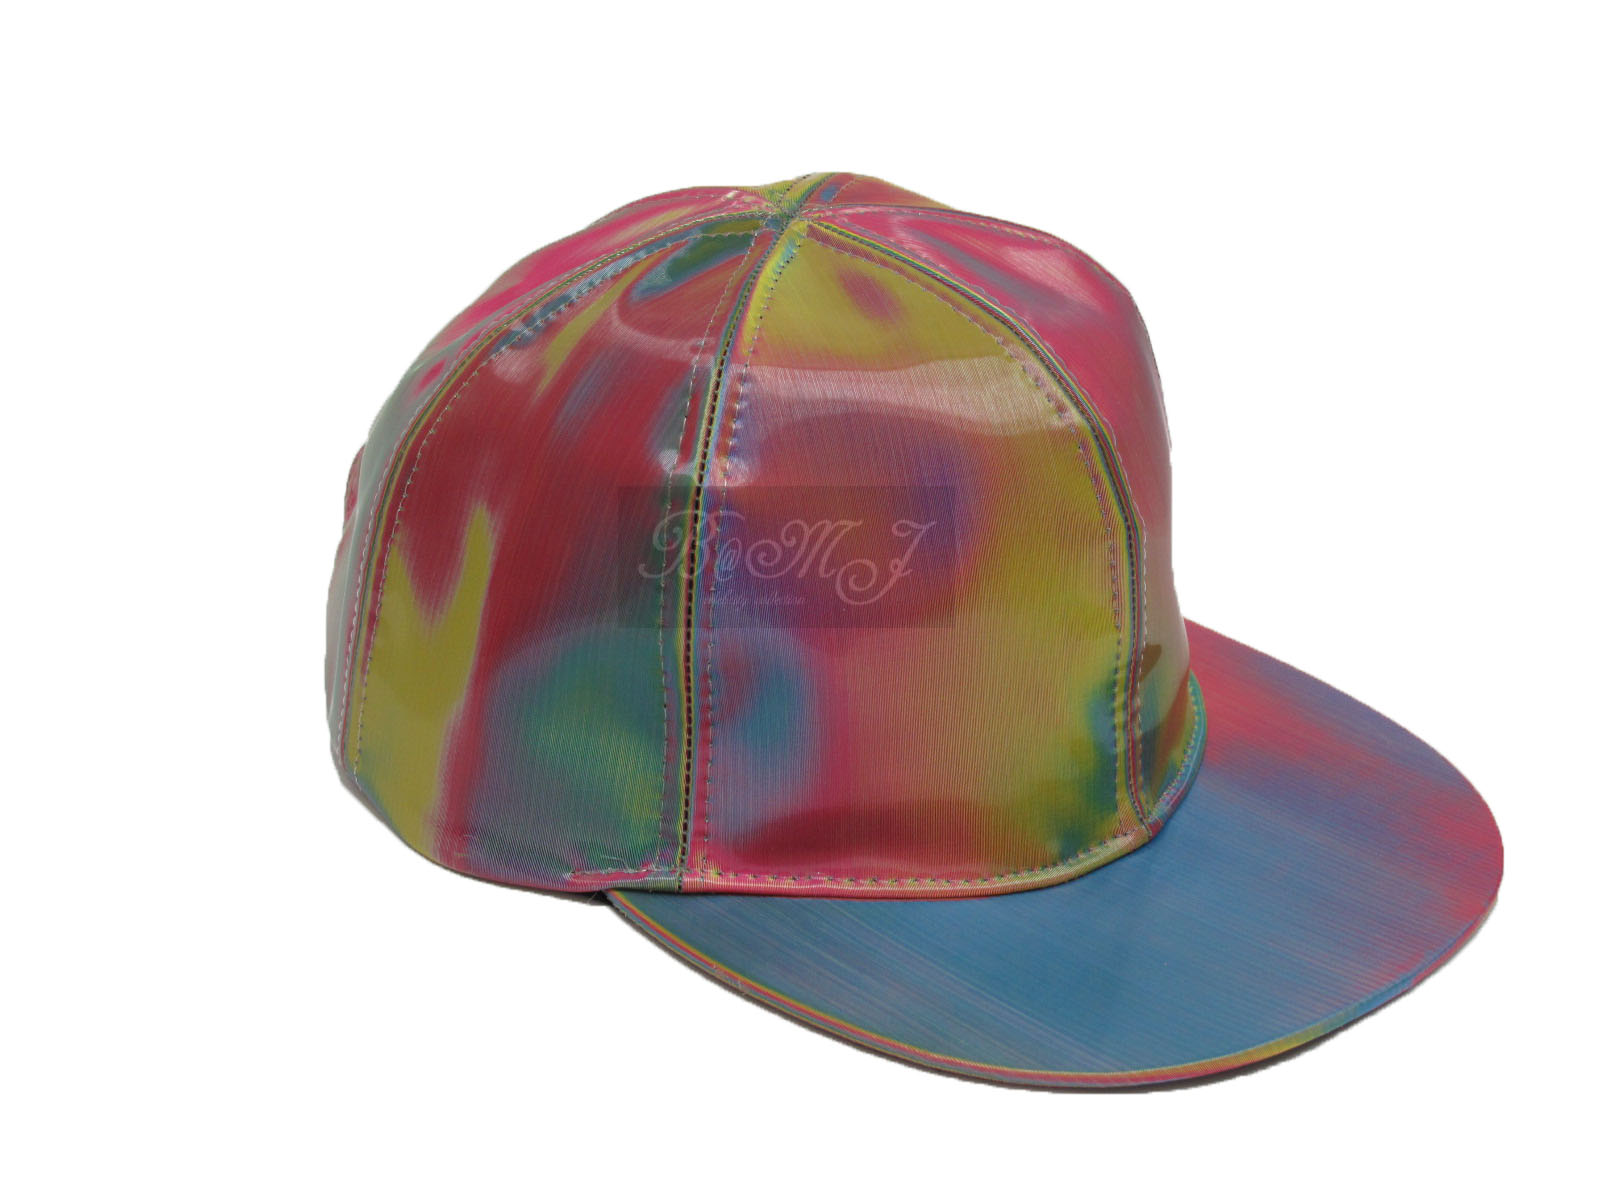 Back To The Future BTTF Marty McFly Cap at 2015